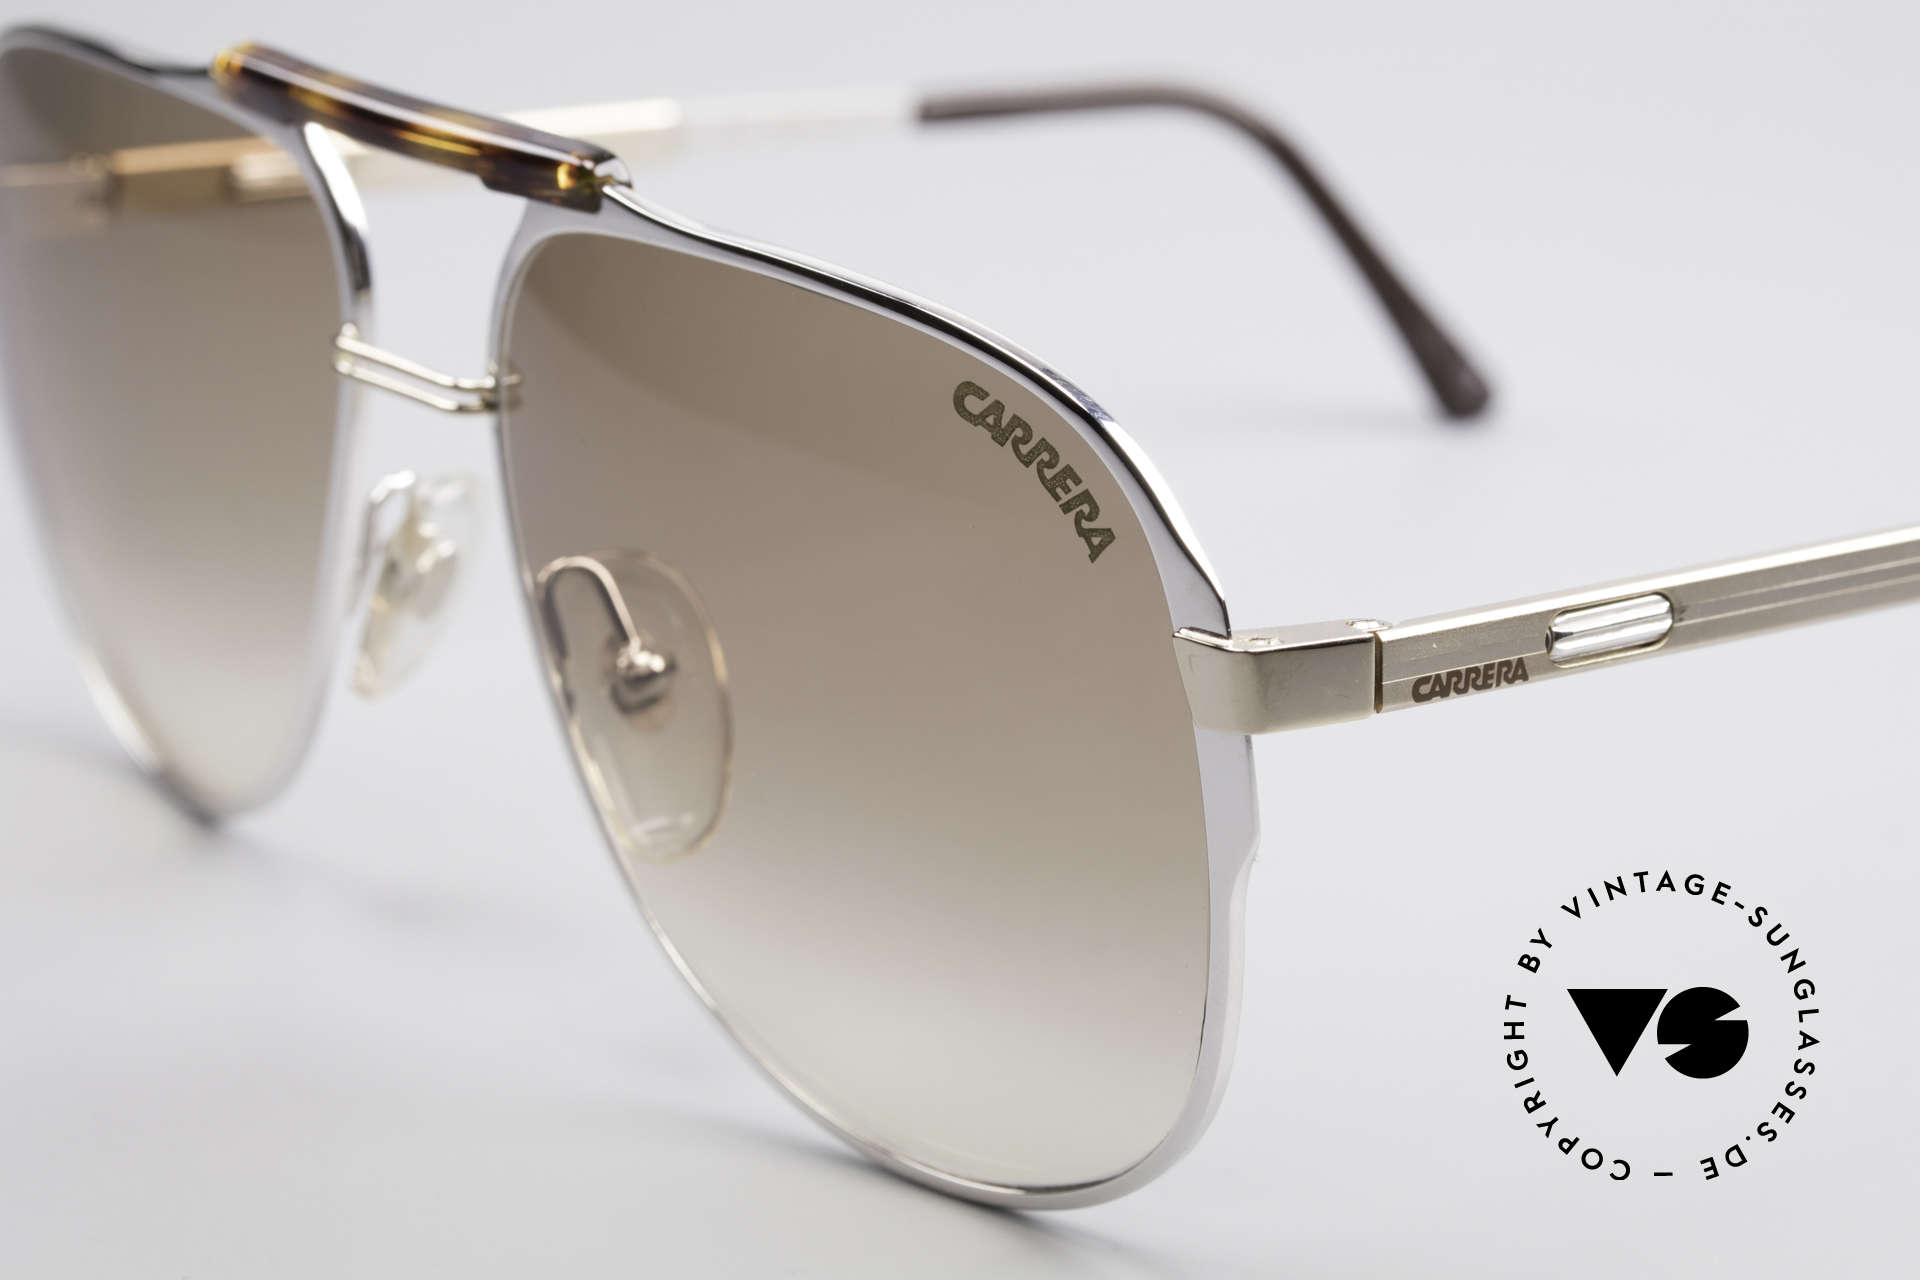 Carrera 5320 Adjustable Temples 80's Vario, unworn (like all our rare VINTAGE 80's eyewear), Made for Men